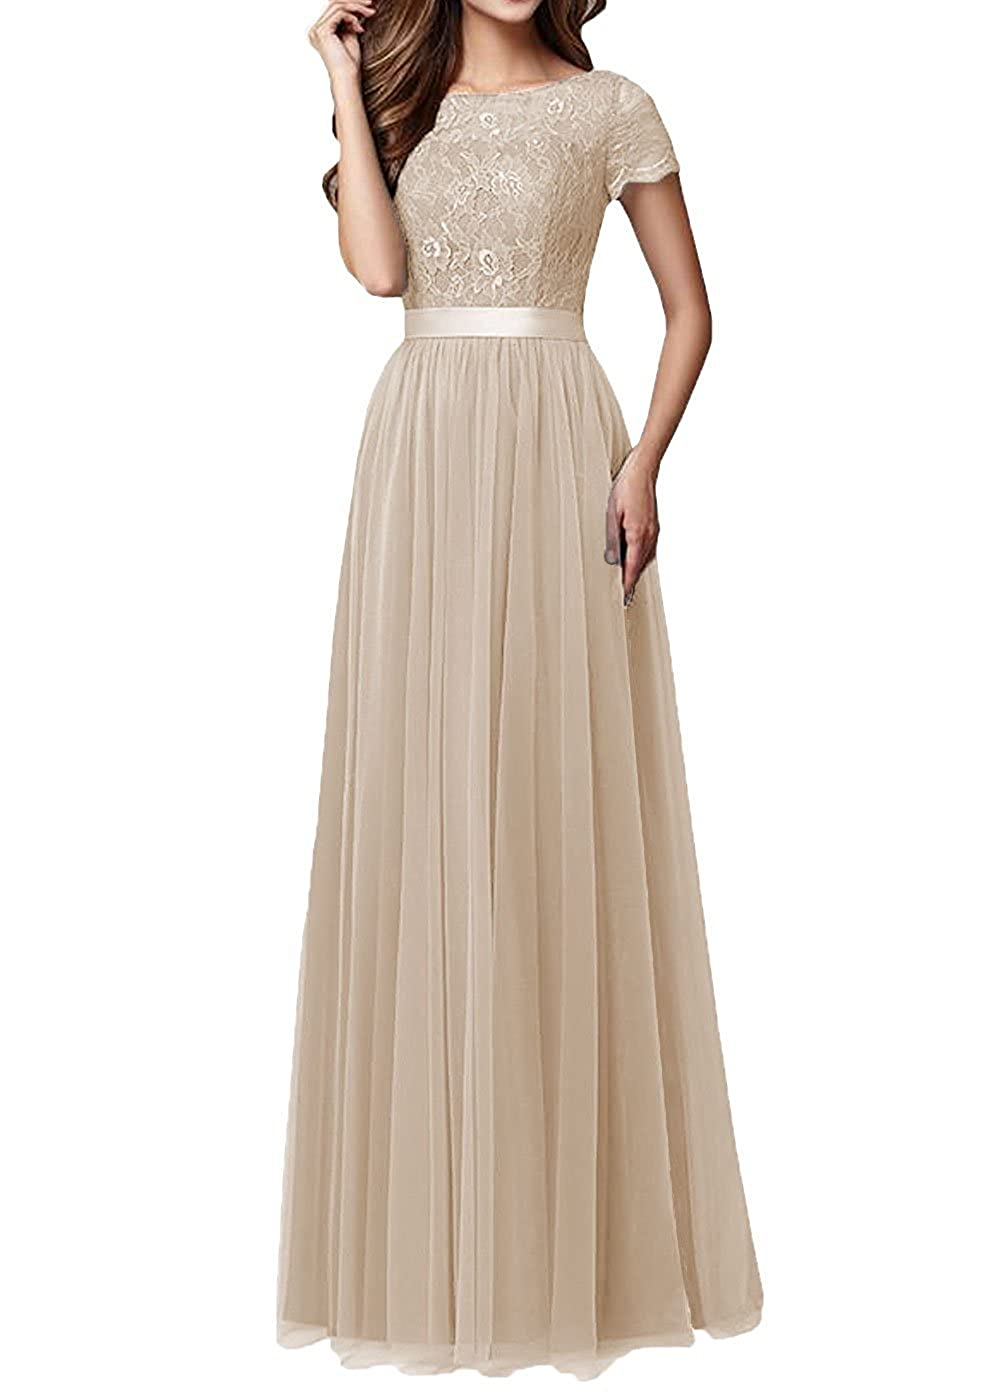 Champagne Pretygirl Womens Tulle Long Bridesmaid Dress Sleeves Lace Prom Evening Dresses